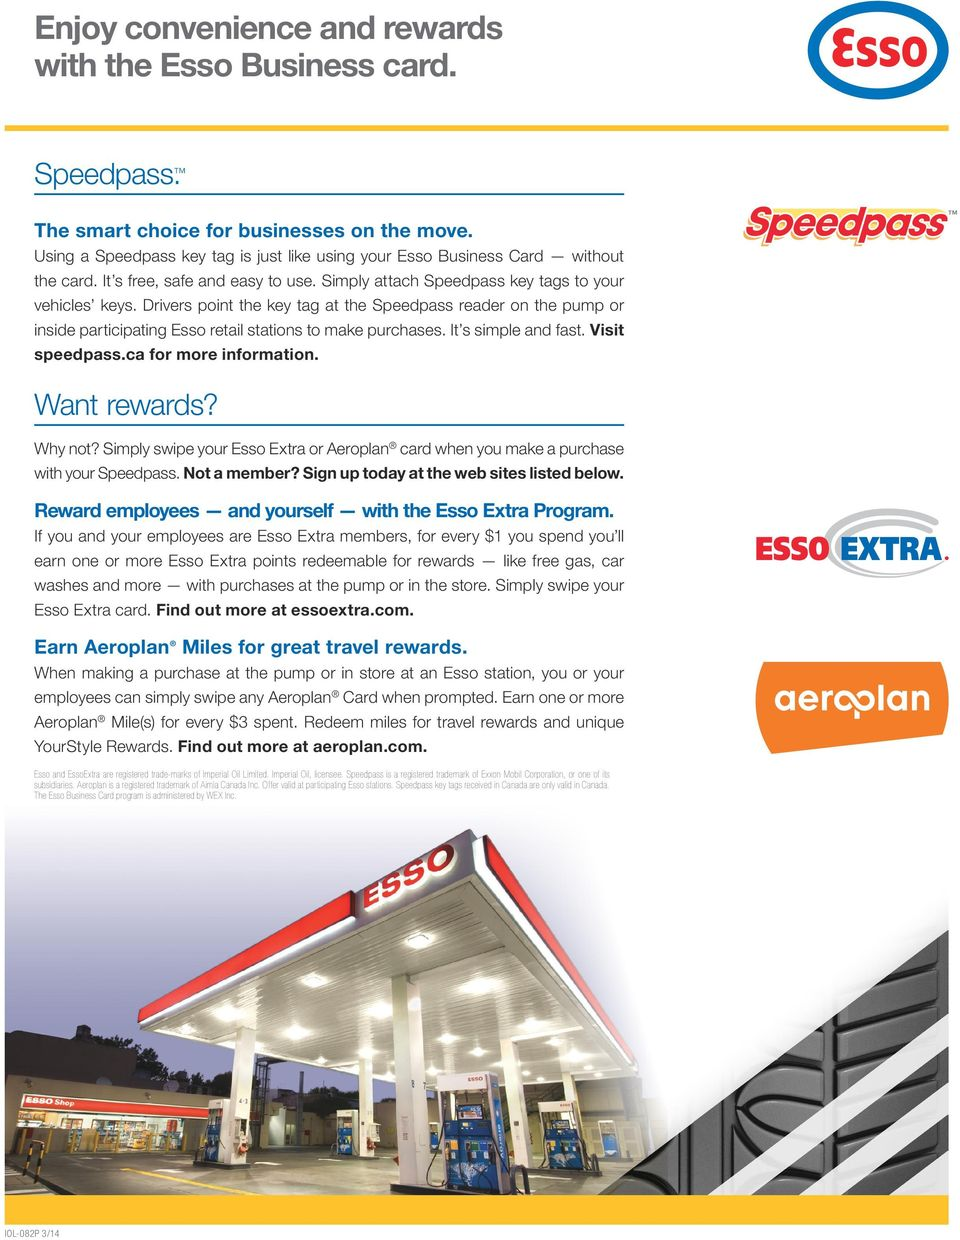 Drivers point the key tag at the Speedpass reader on the pump or inside participating Esso retail stations to make purchases. It s simple and fast. Visit speedpass.ca for more information.